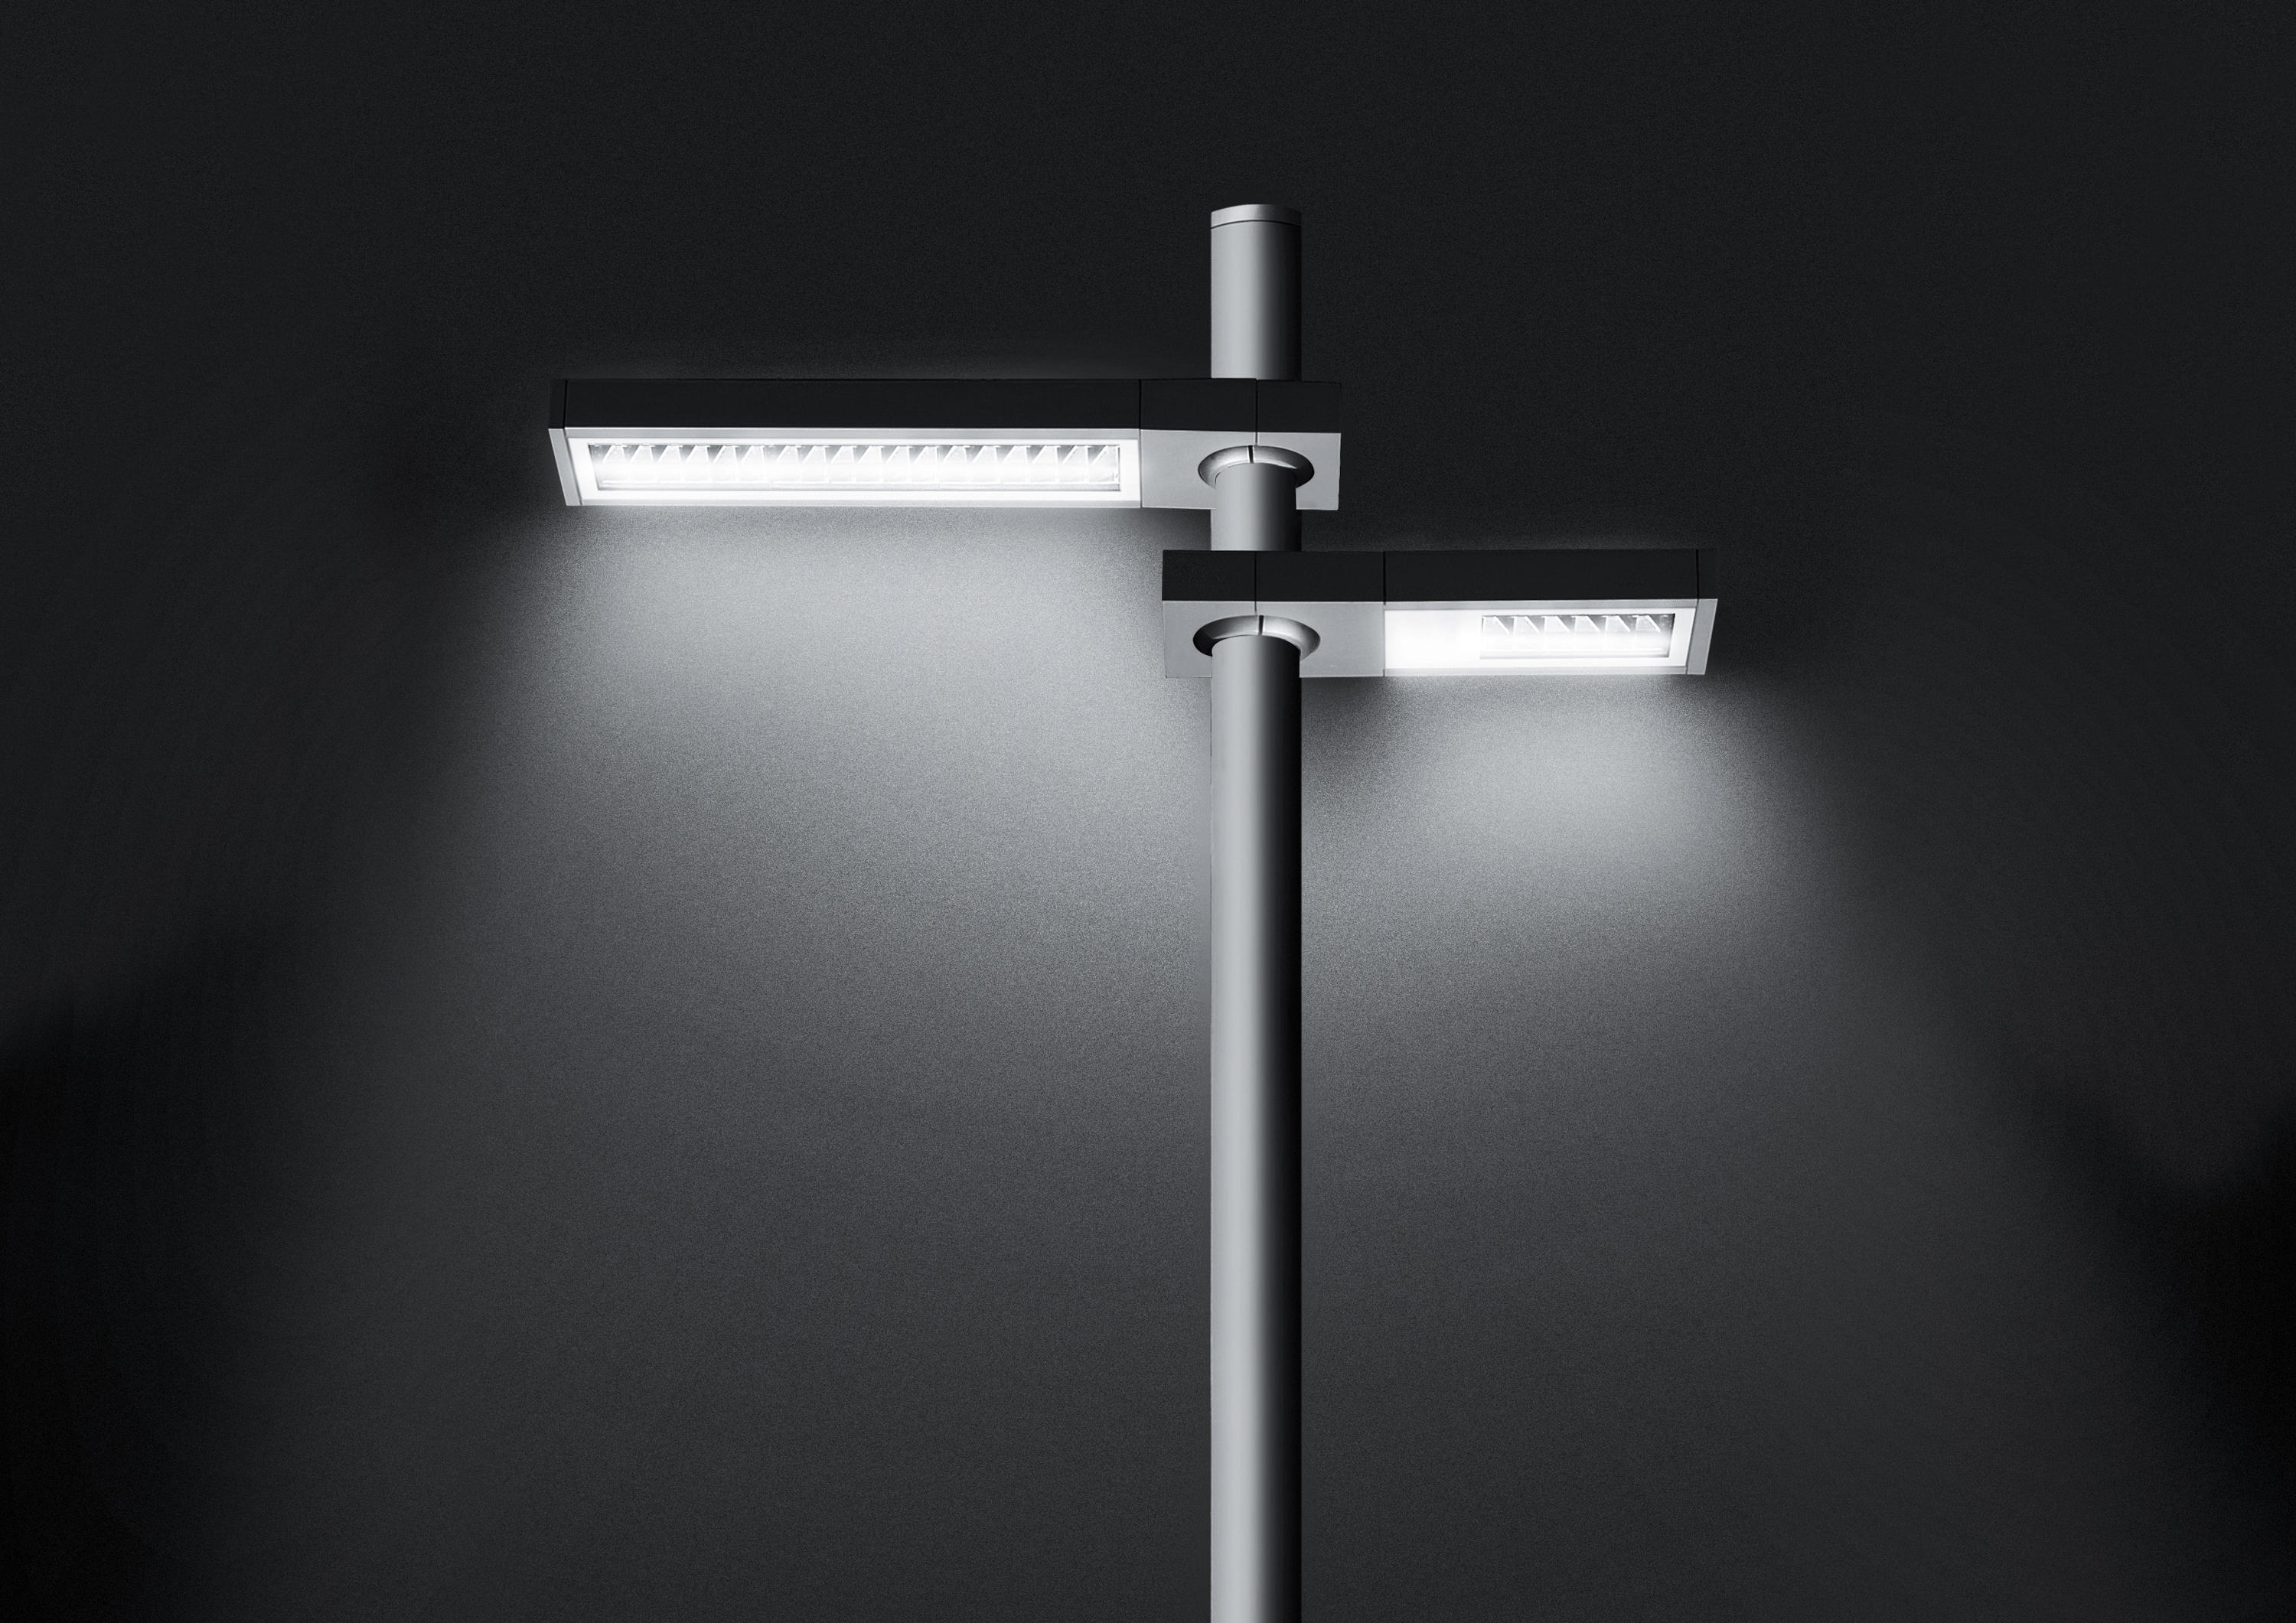 Avenue street lighting 12 led led lights from simes for Eclairage a led exterieur